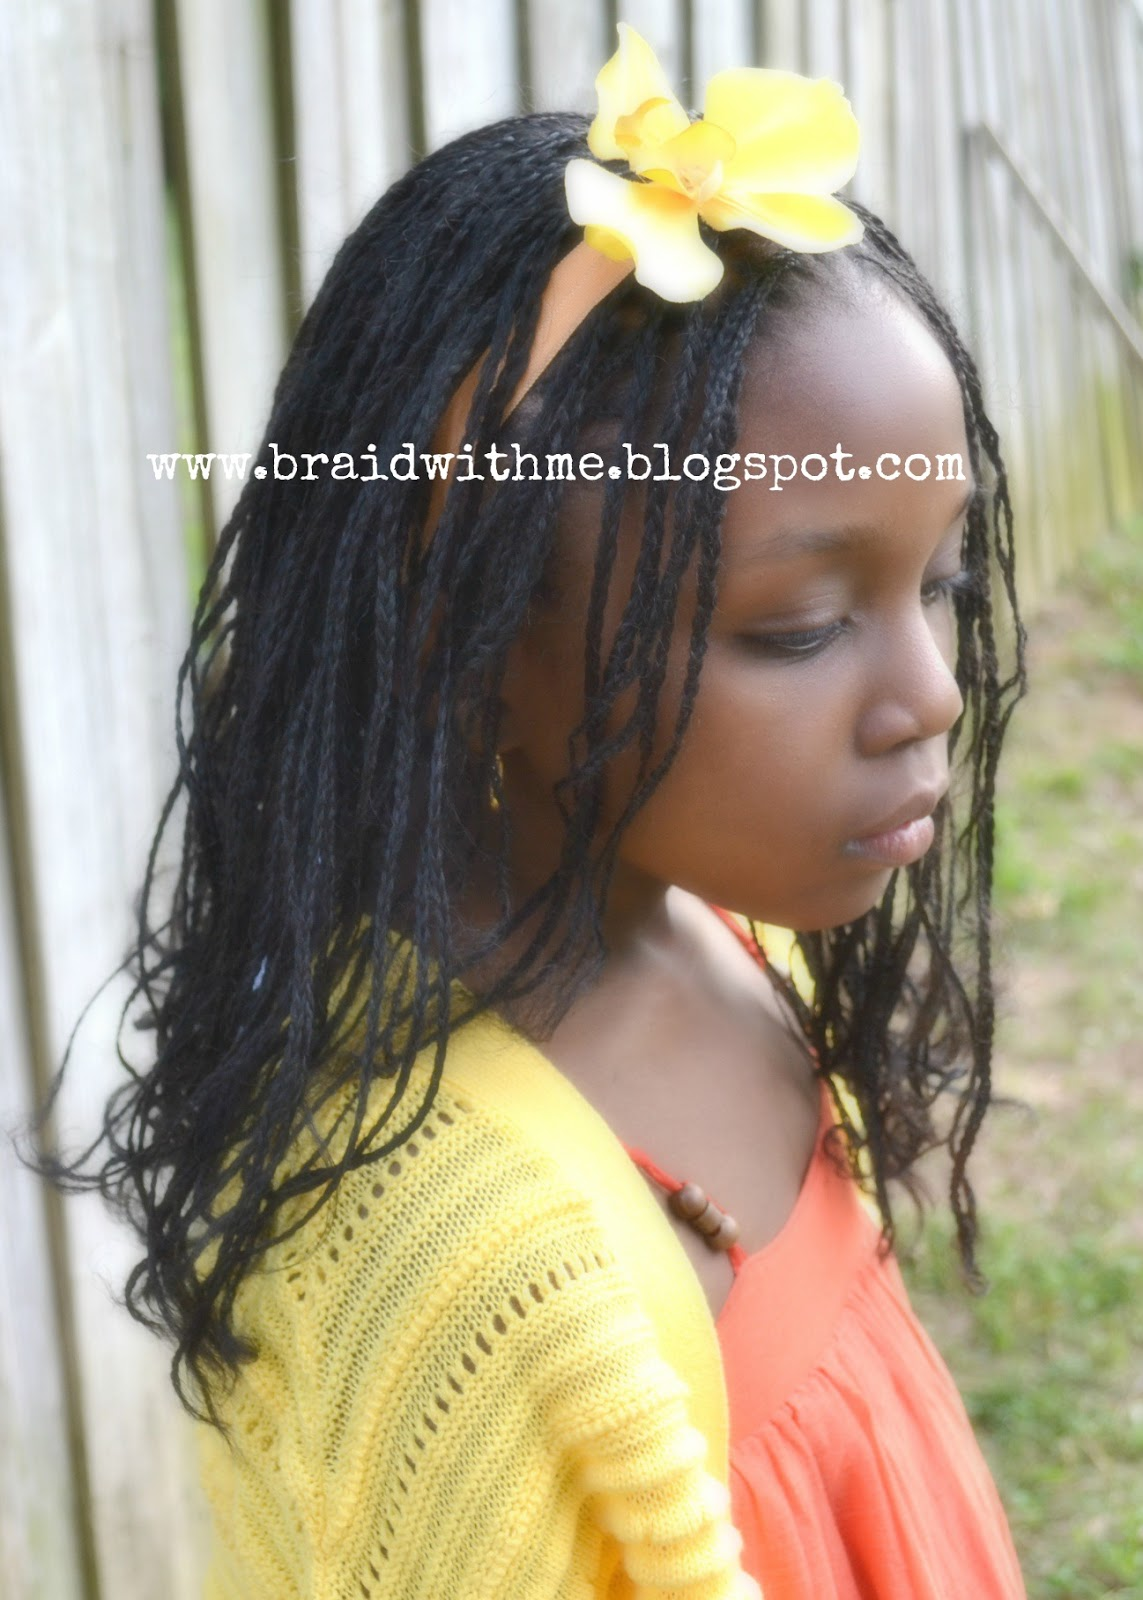 After Braids Hair Care.Beads Braids And Beyond: Box Braids ...